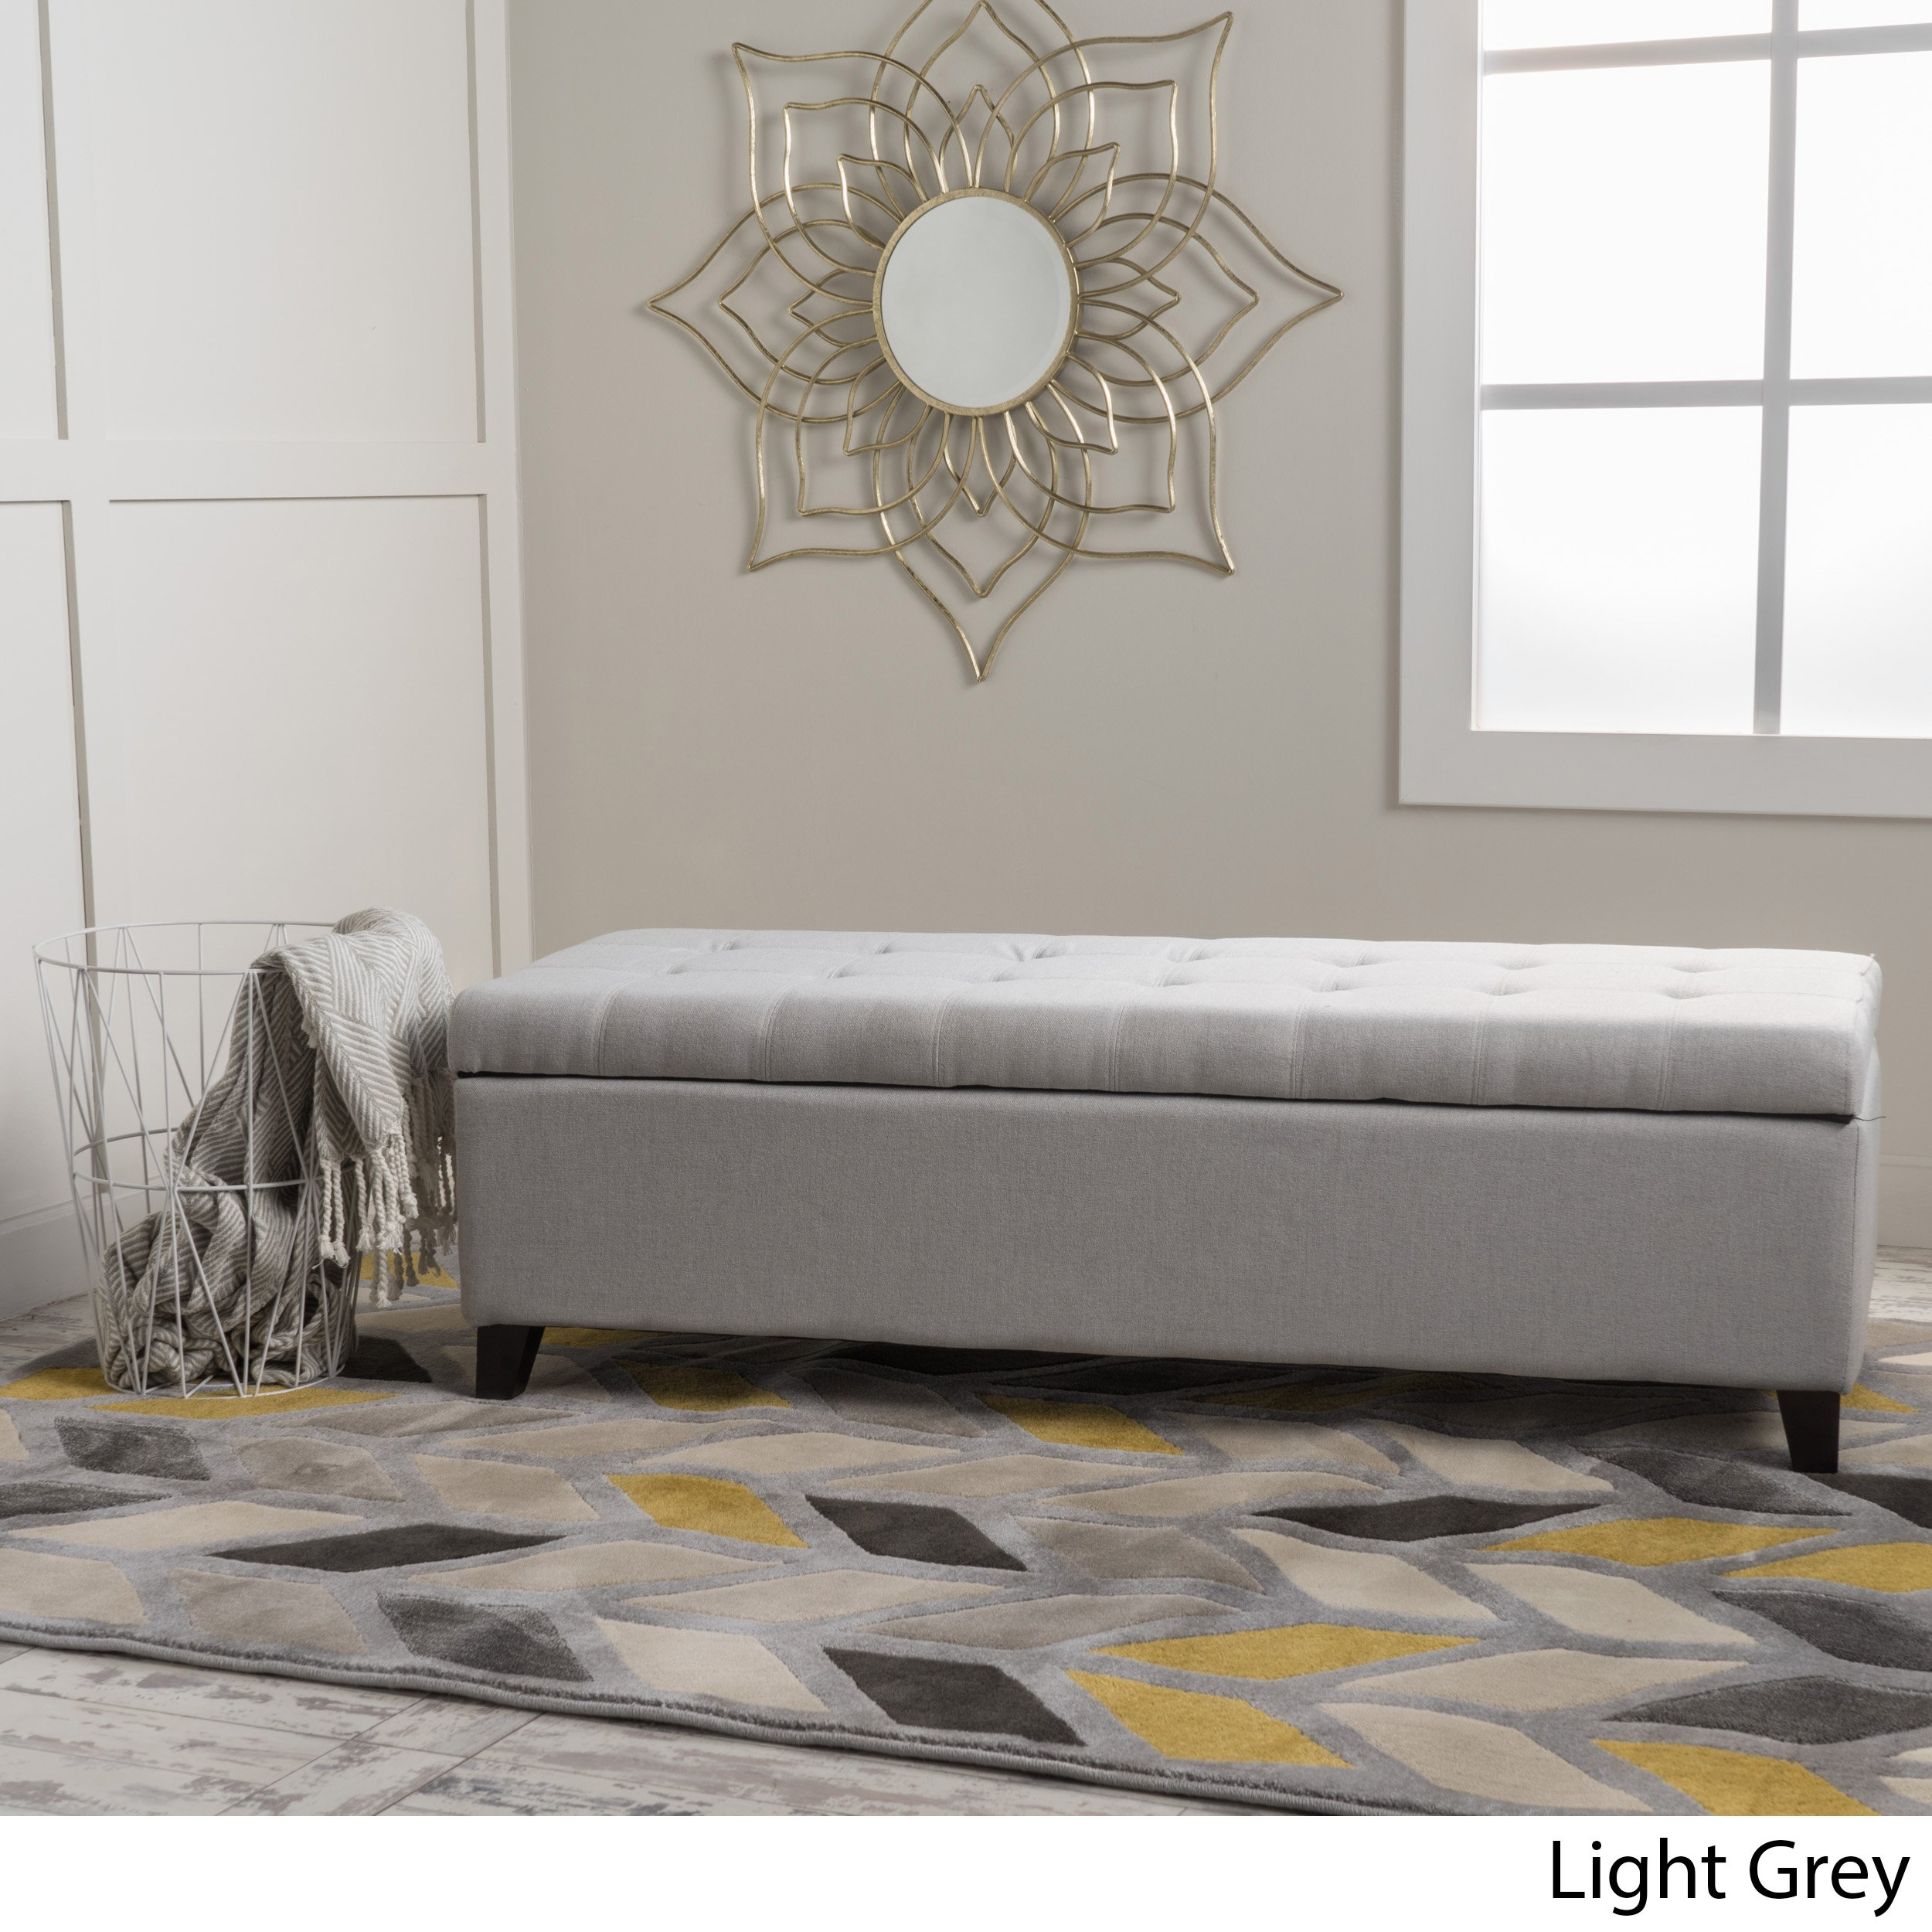 Christopher Knight Home 299391 Living Santa Rosa Light Grey Fabric Storage Ottoman, by Christopher Knight Home